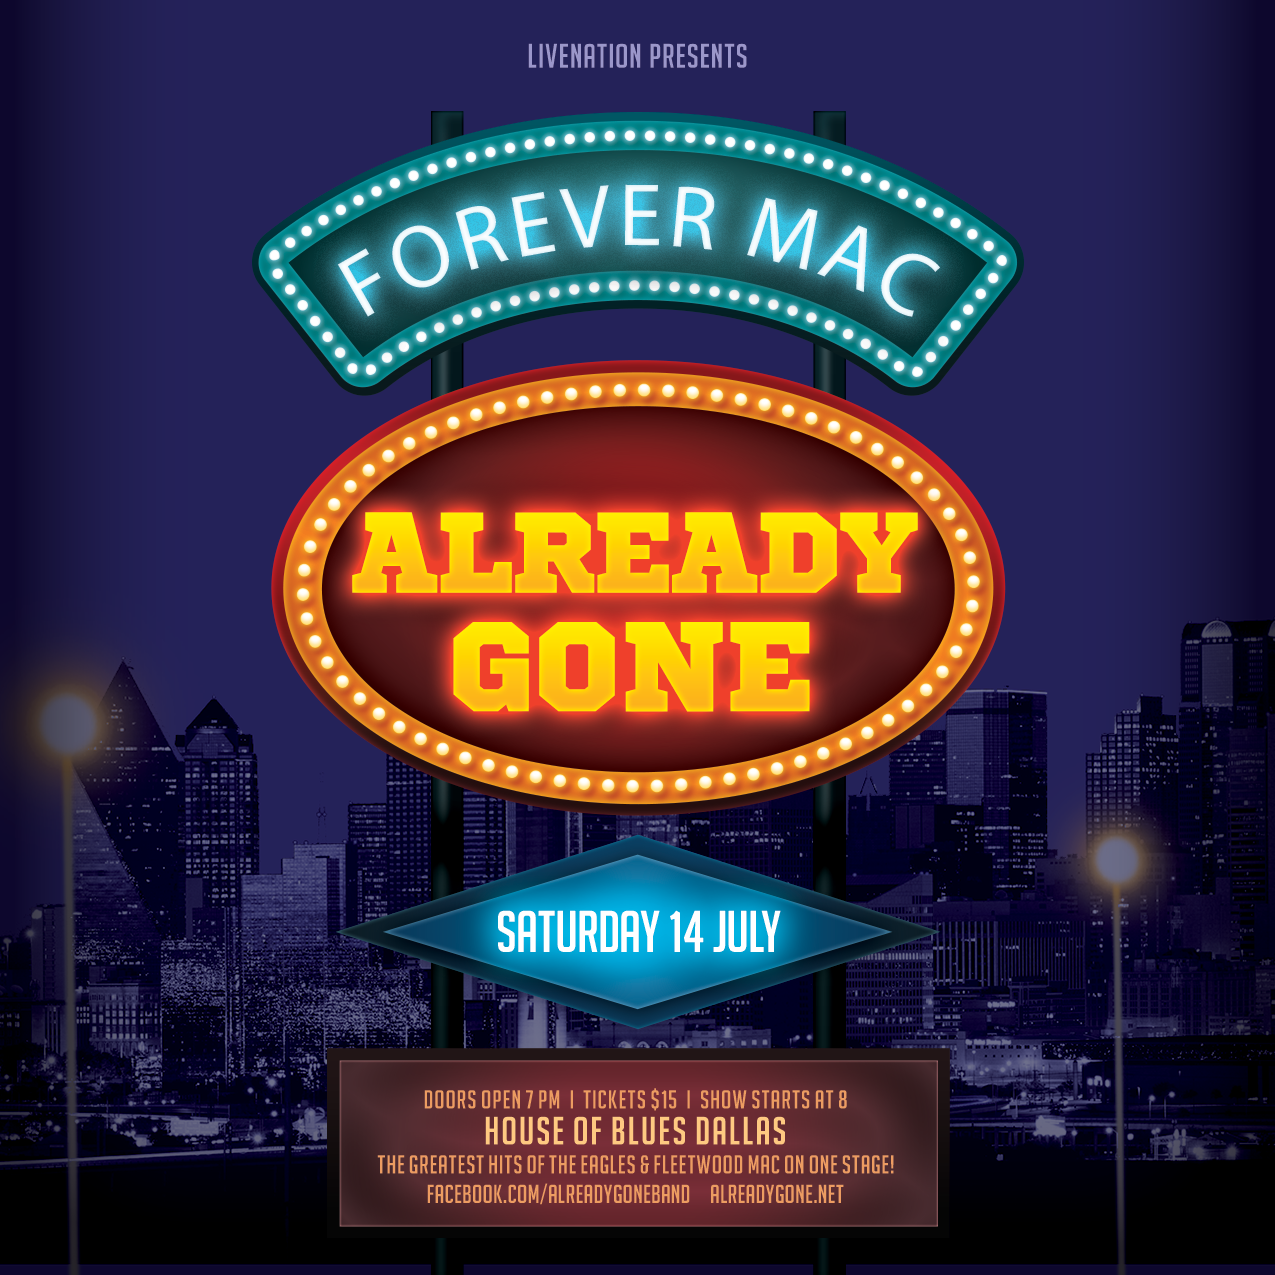 Already Gone - with Forever Mac